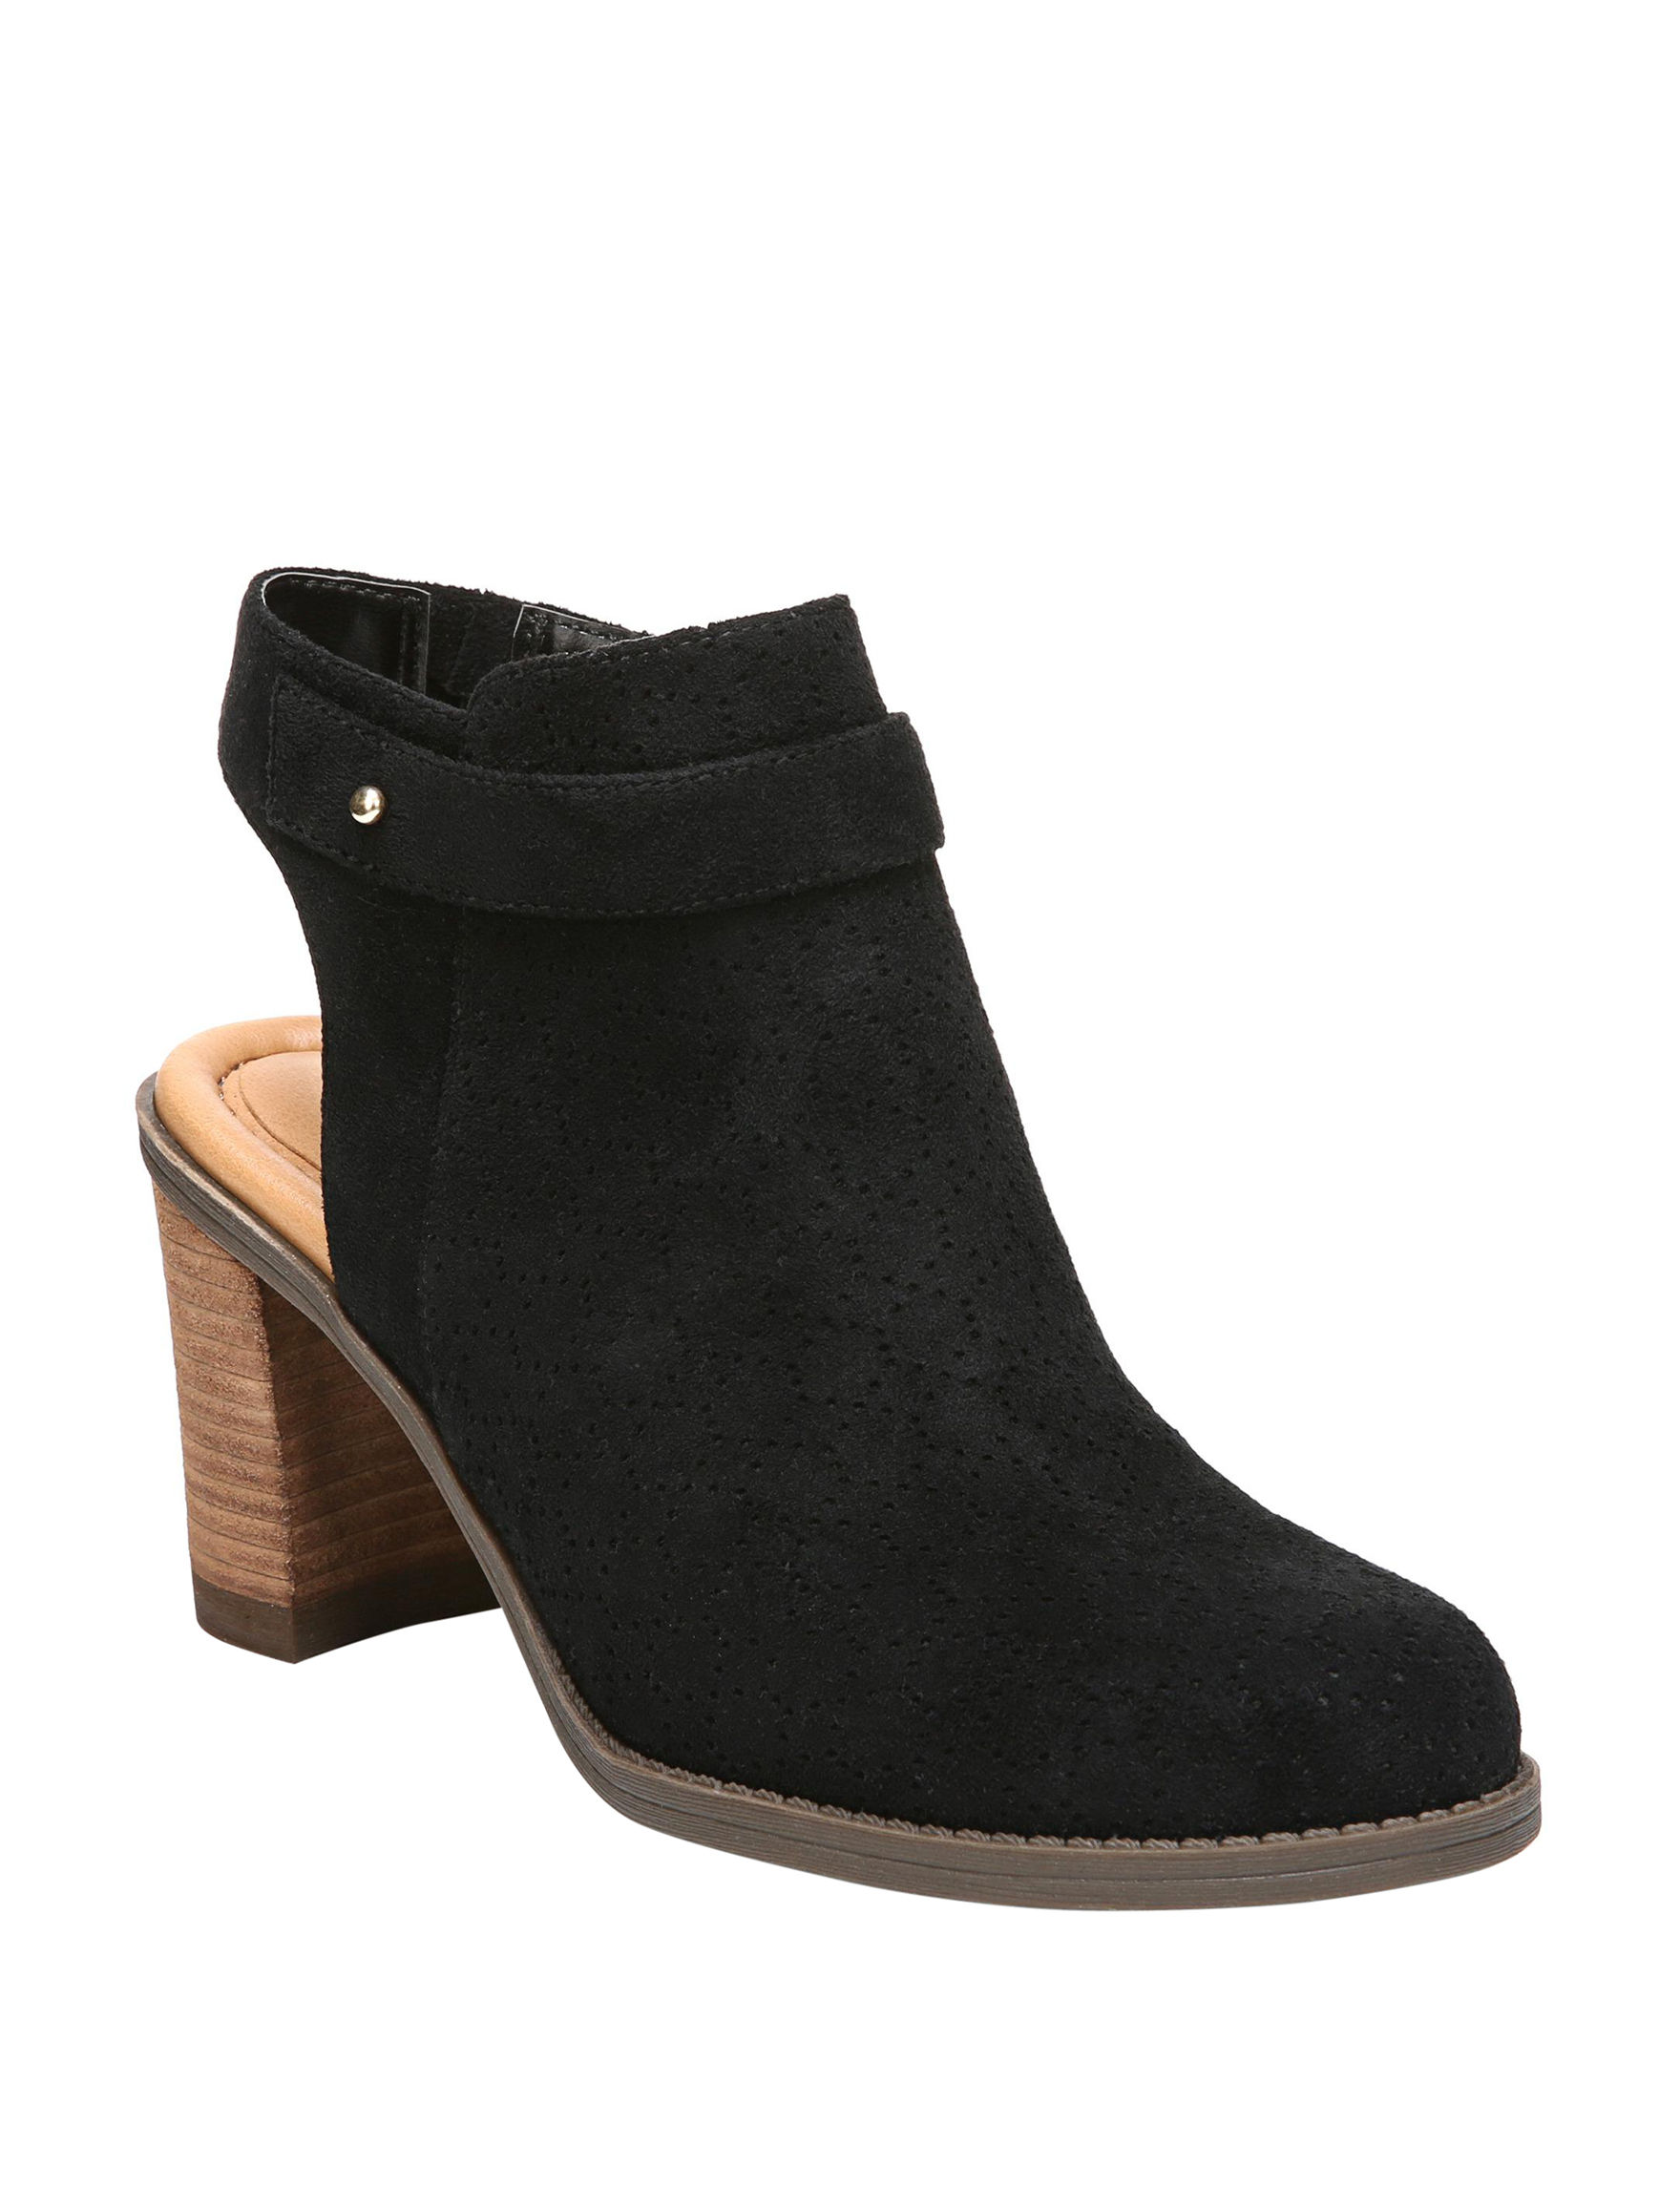 Dr. Scholl's Black Suede Ankle Boots & Booties